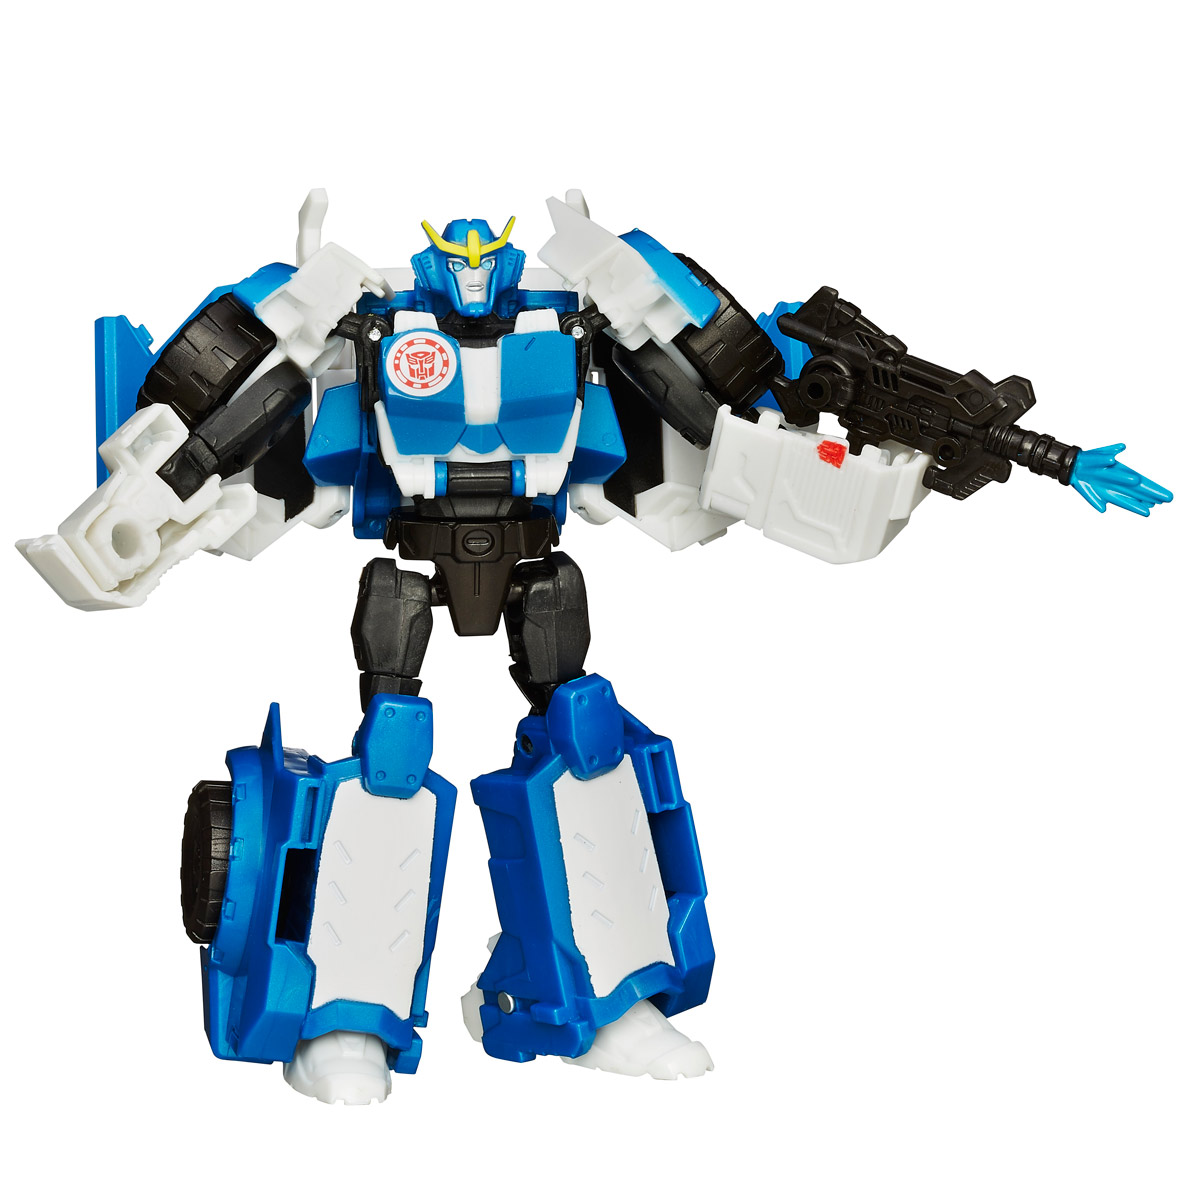 Transformers Robots In Disguise Strongarm transformers robots in disguise combiners 6 inch action figure hightower autobot crane